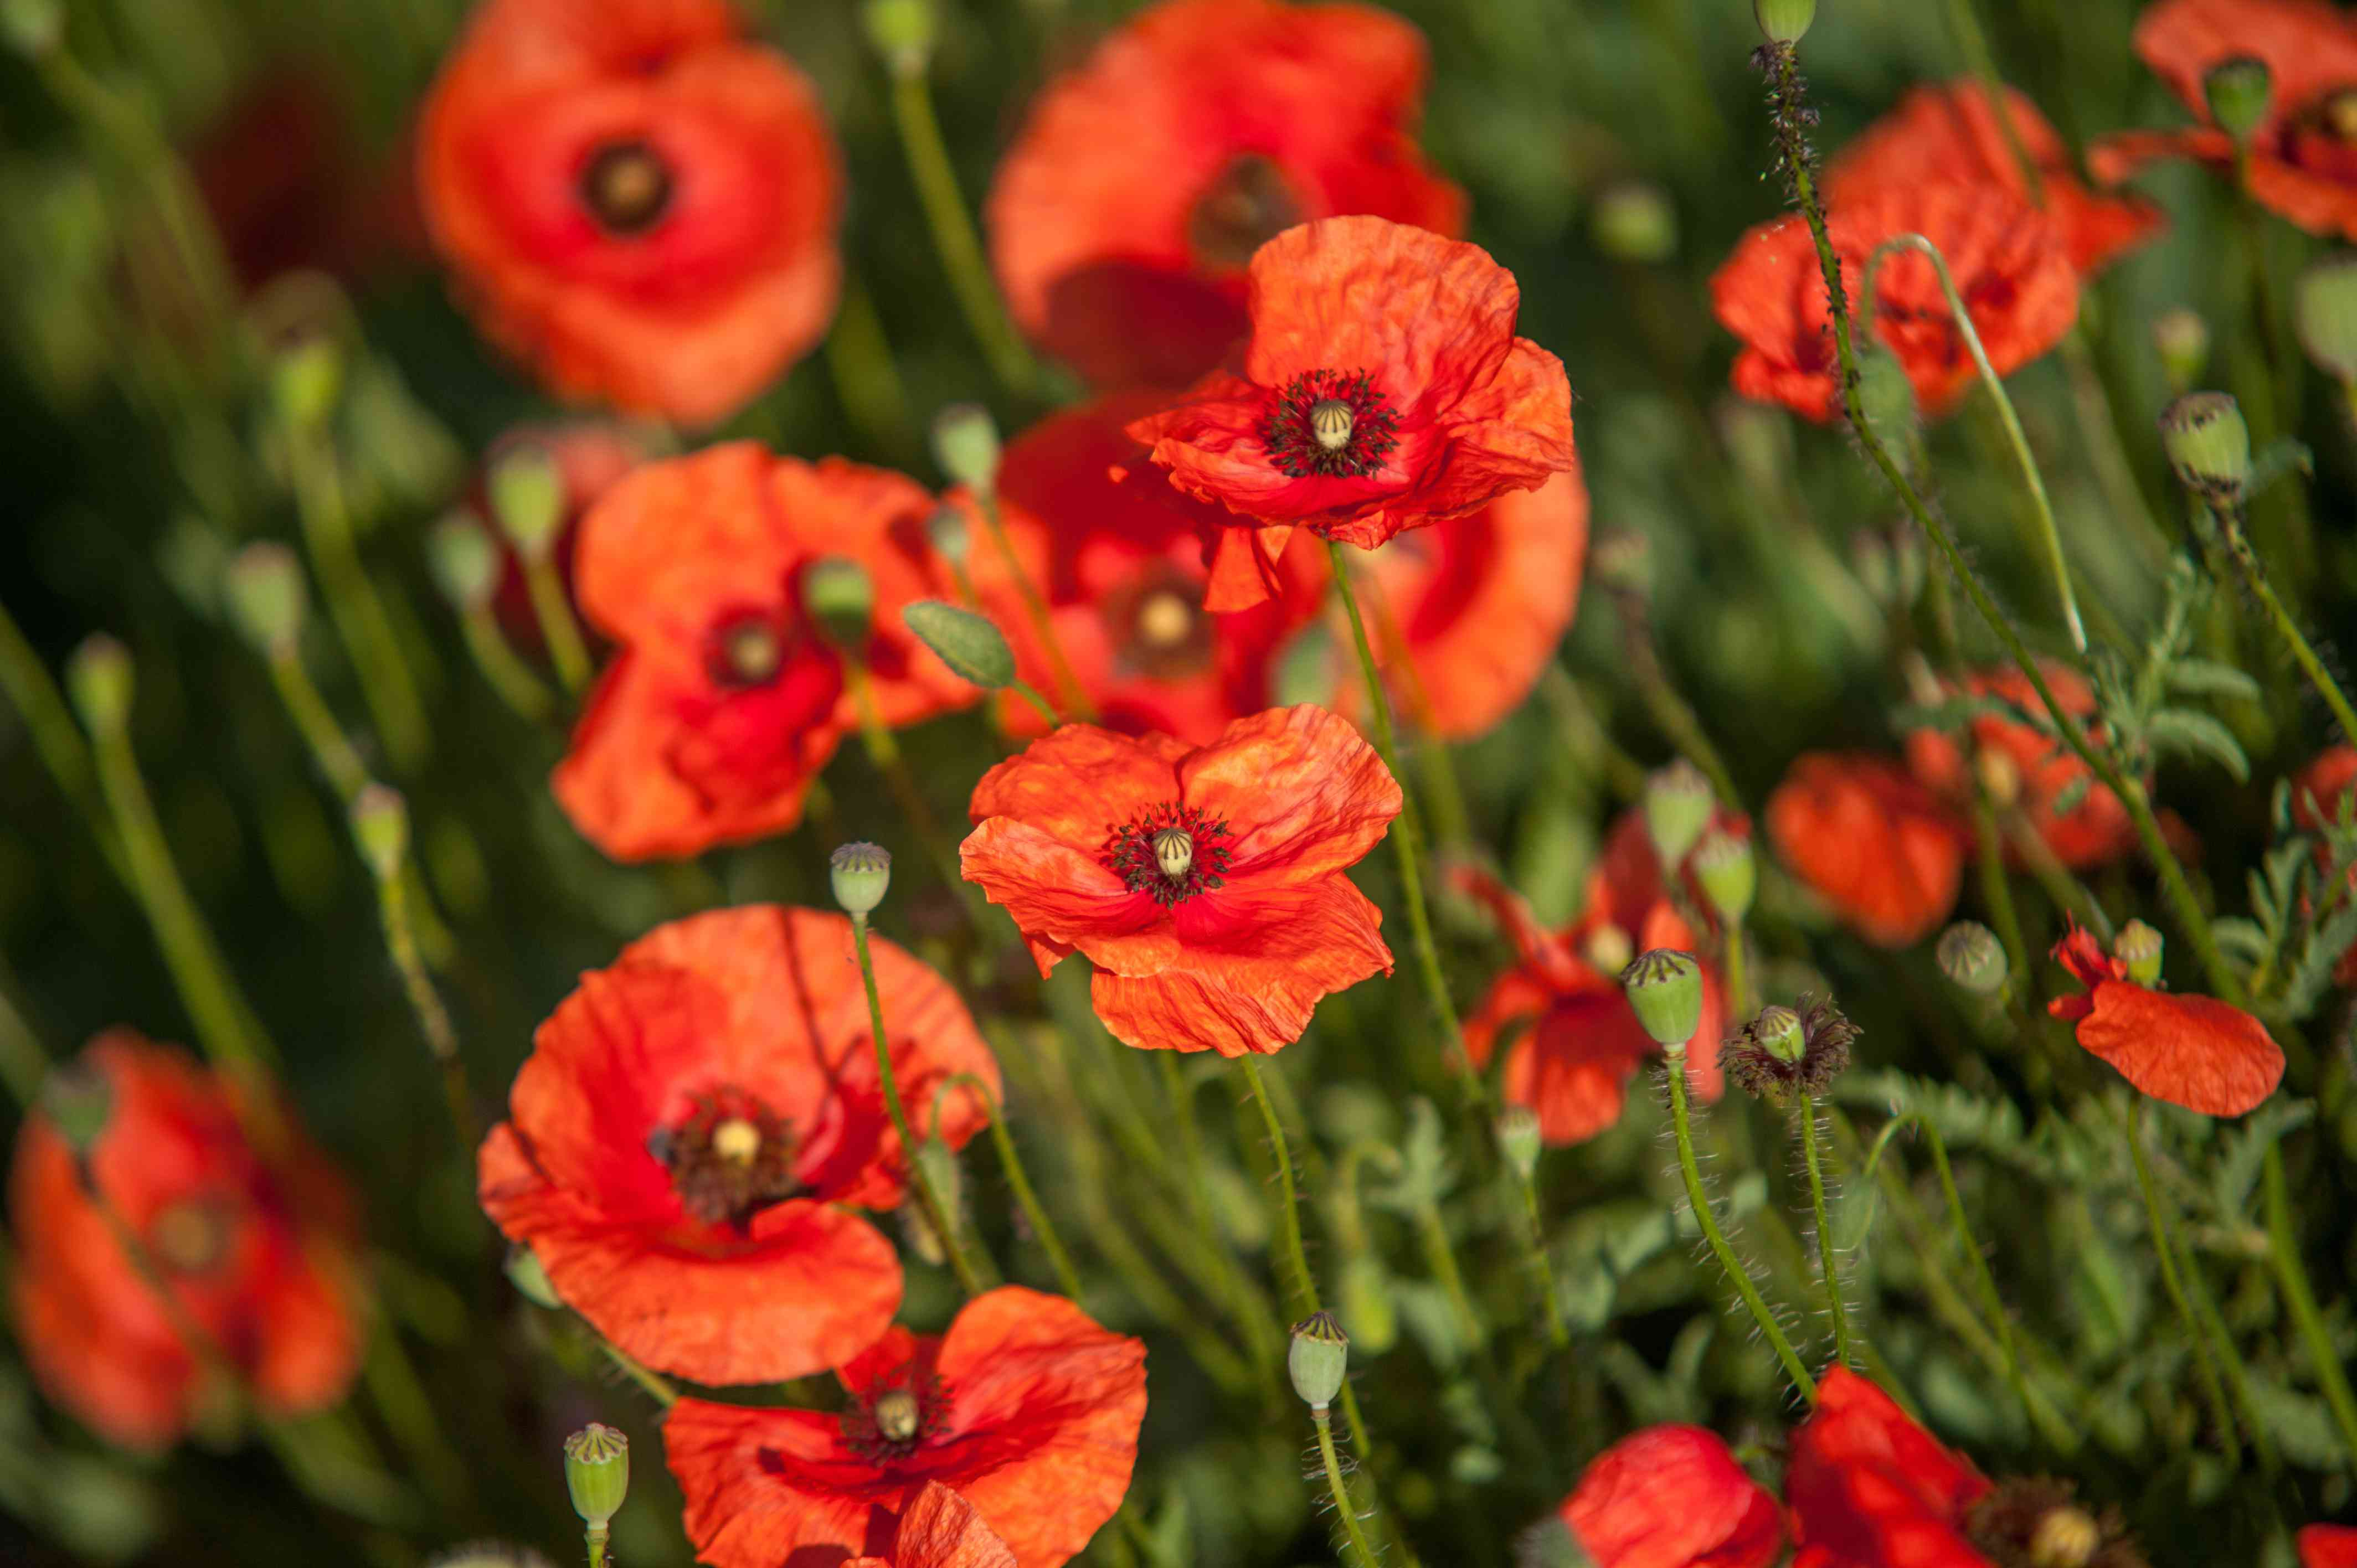 Common poppy with orange flowers and buds in sunlight